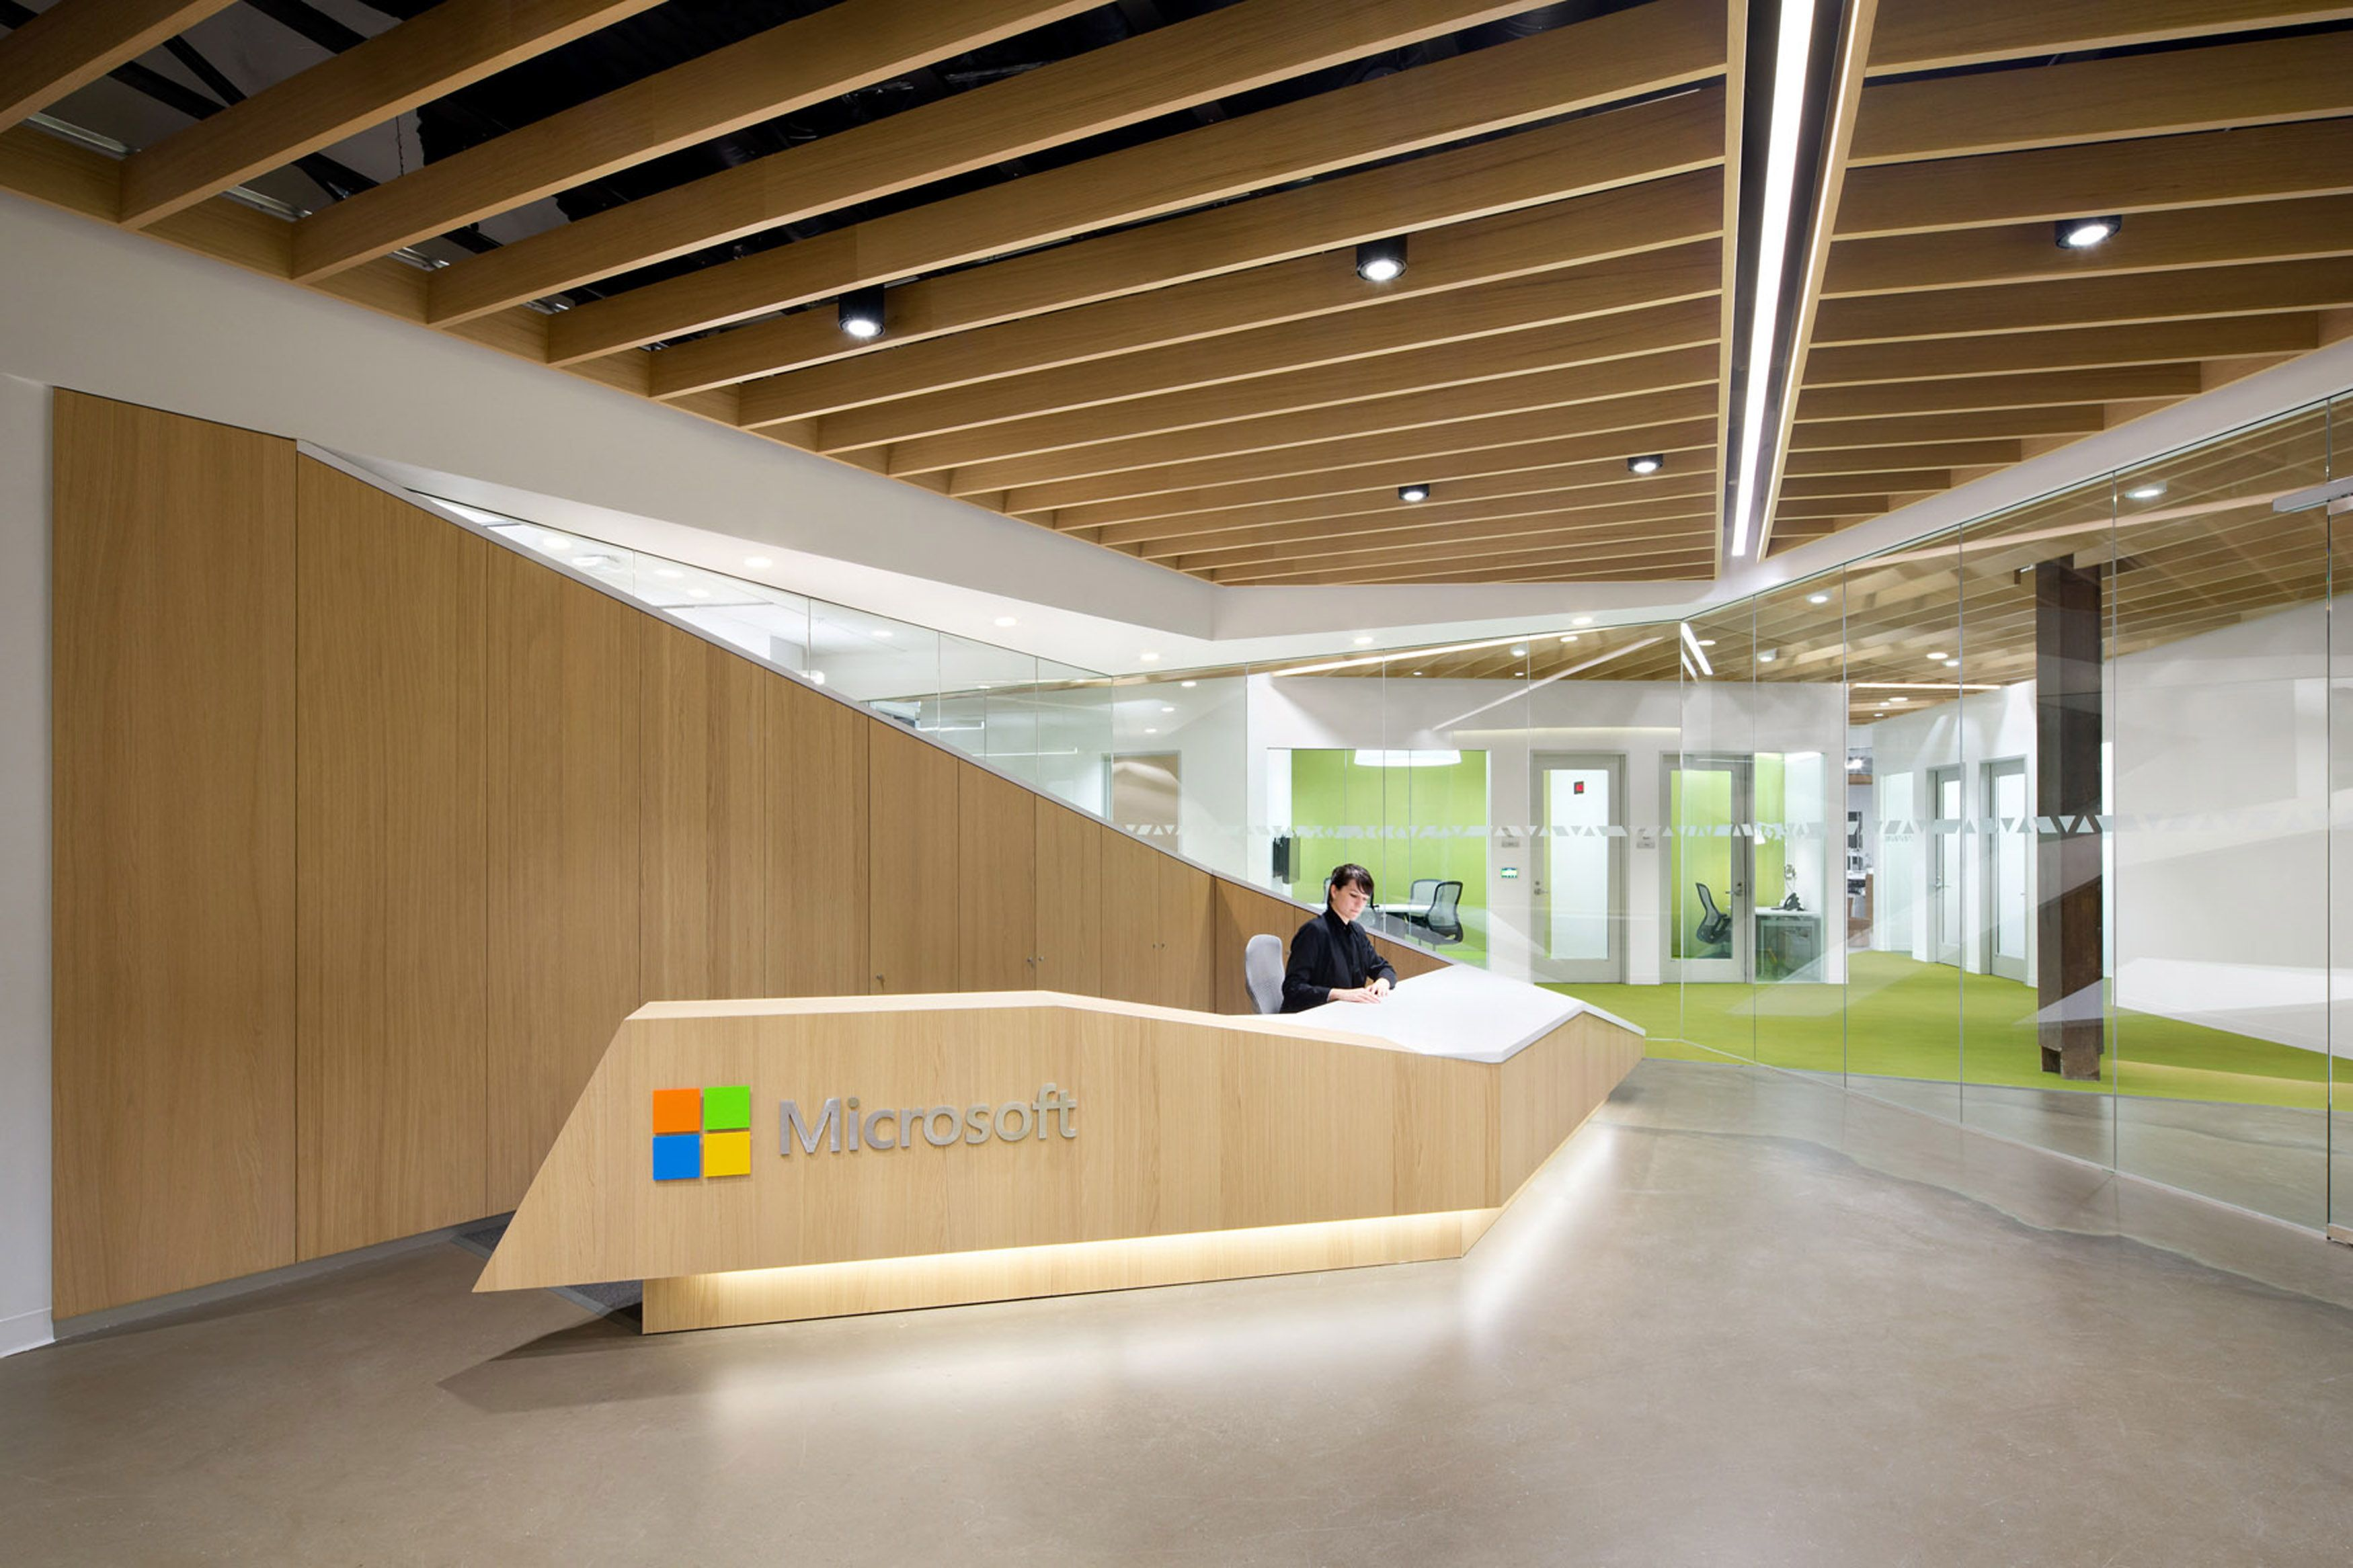 Building 92 microsoft store - Offices For Microsoft Corporation In Vancouver British Columbia Canada